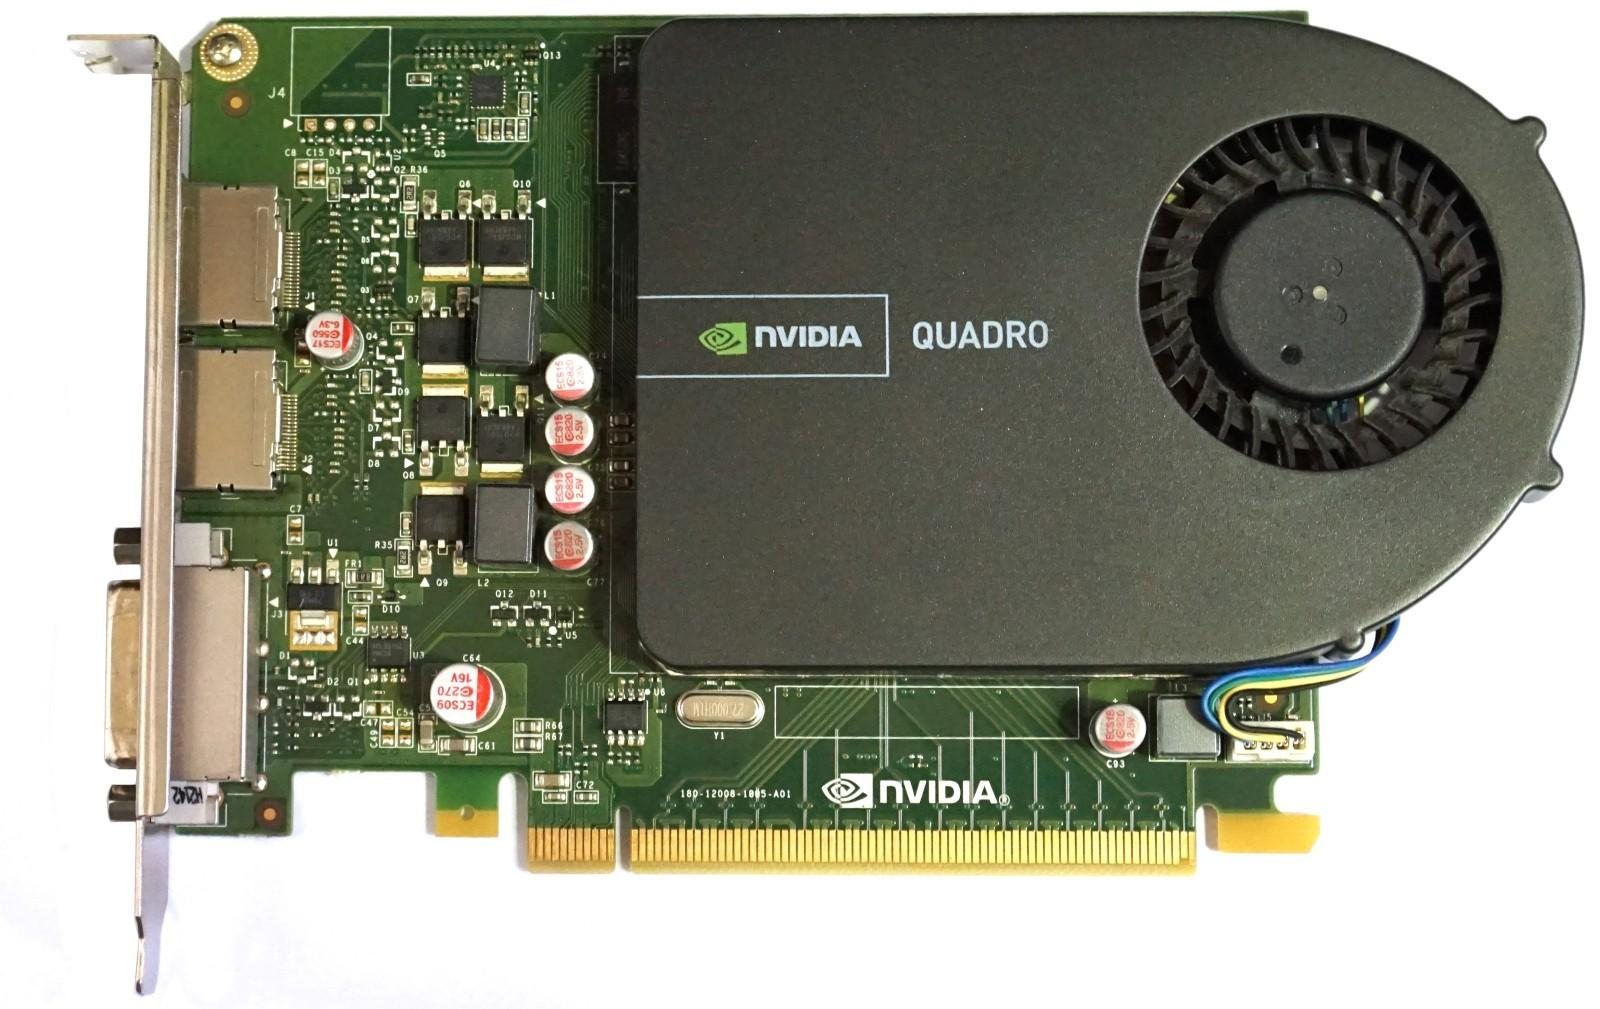 Used NVIDIA QUADRO 2000 Graphic Card best and lowest Price in Pakistan